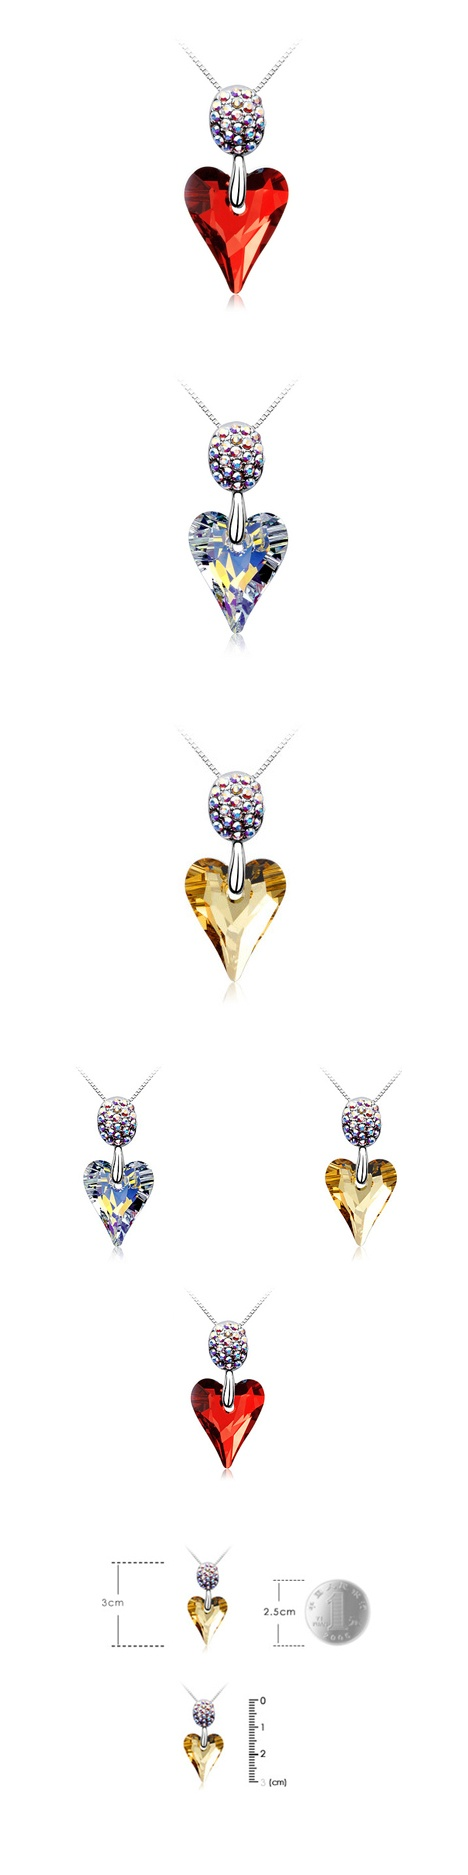 MOTHER'S DAY SPECIAL: 62% OFF Necklace made with Pure Brilliance Swarovski Elements (3 choices) + FREE Nationwide Delivery @ Sugar House 928 for only RM75 instead of RM199!